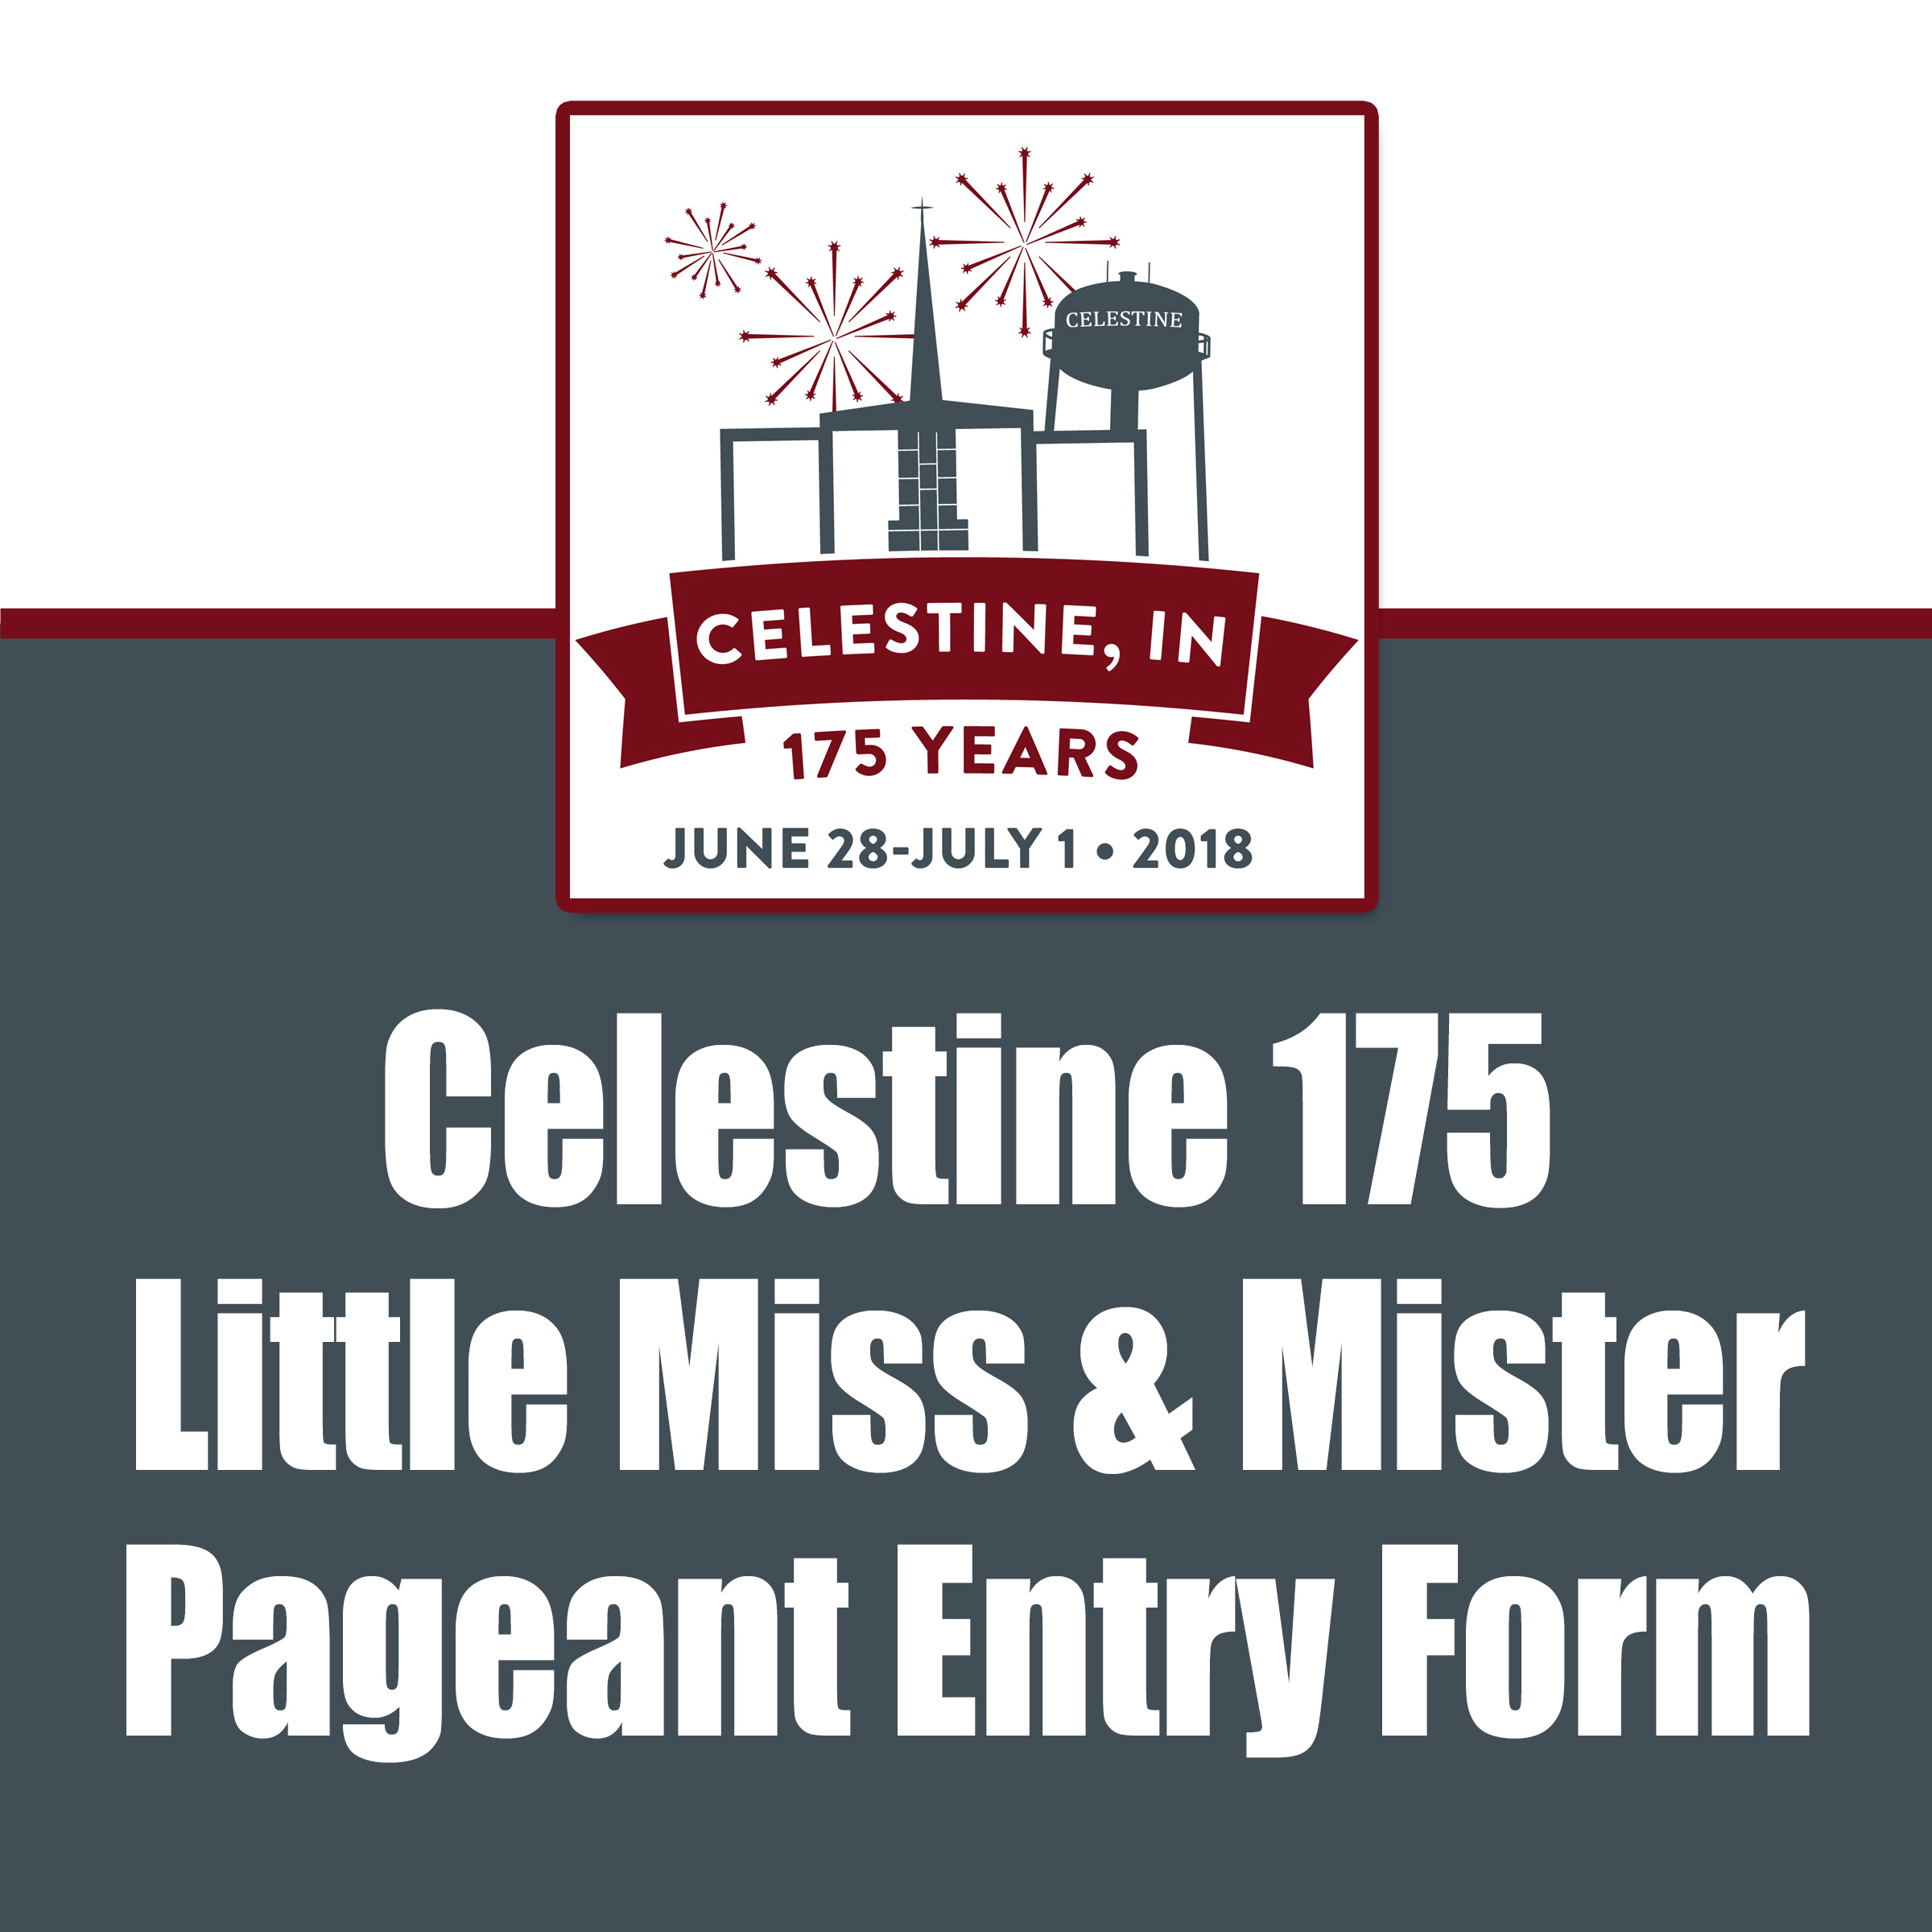 Little-Miss-&-Mister-Pageant.jpg